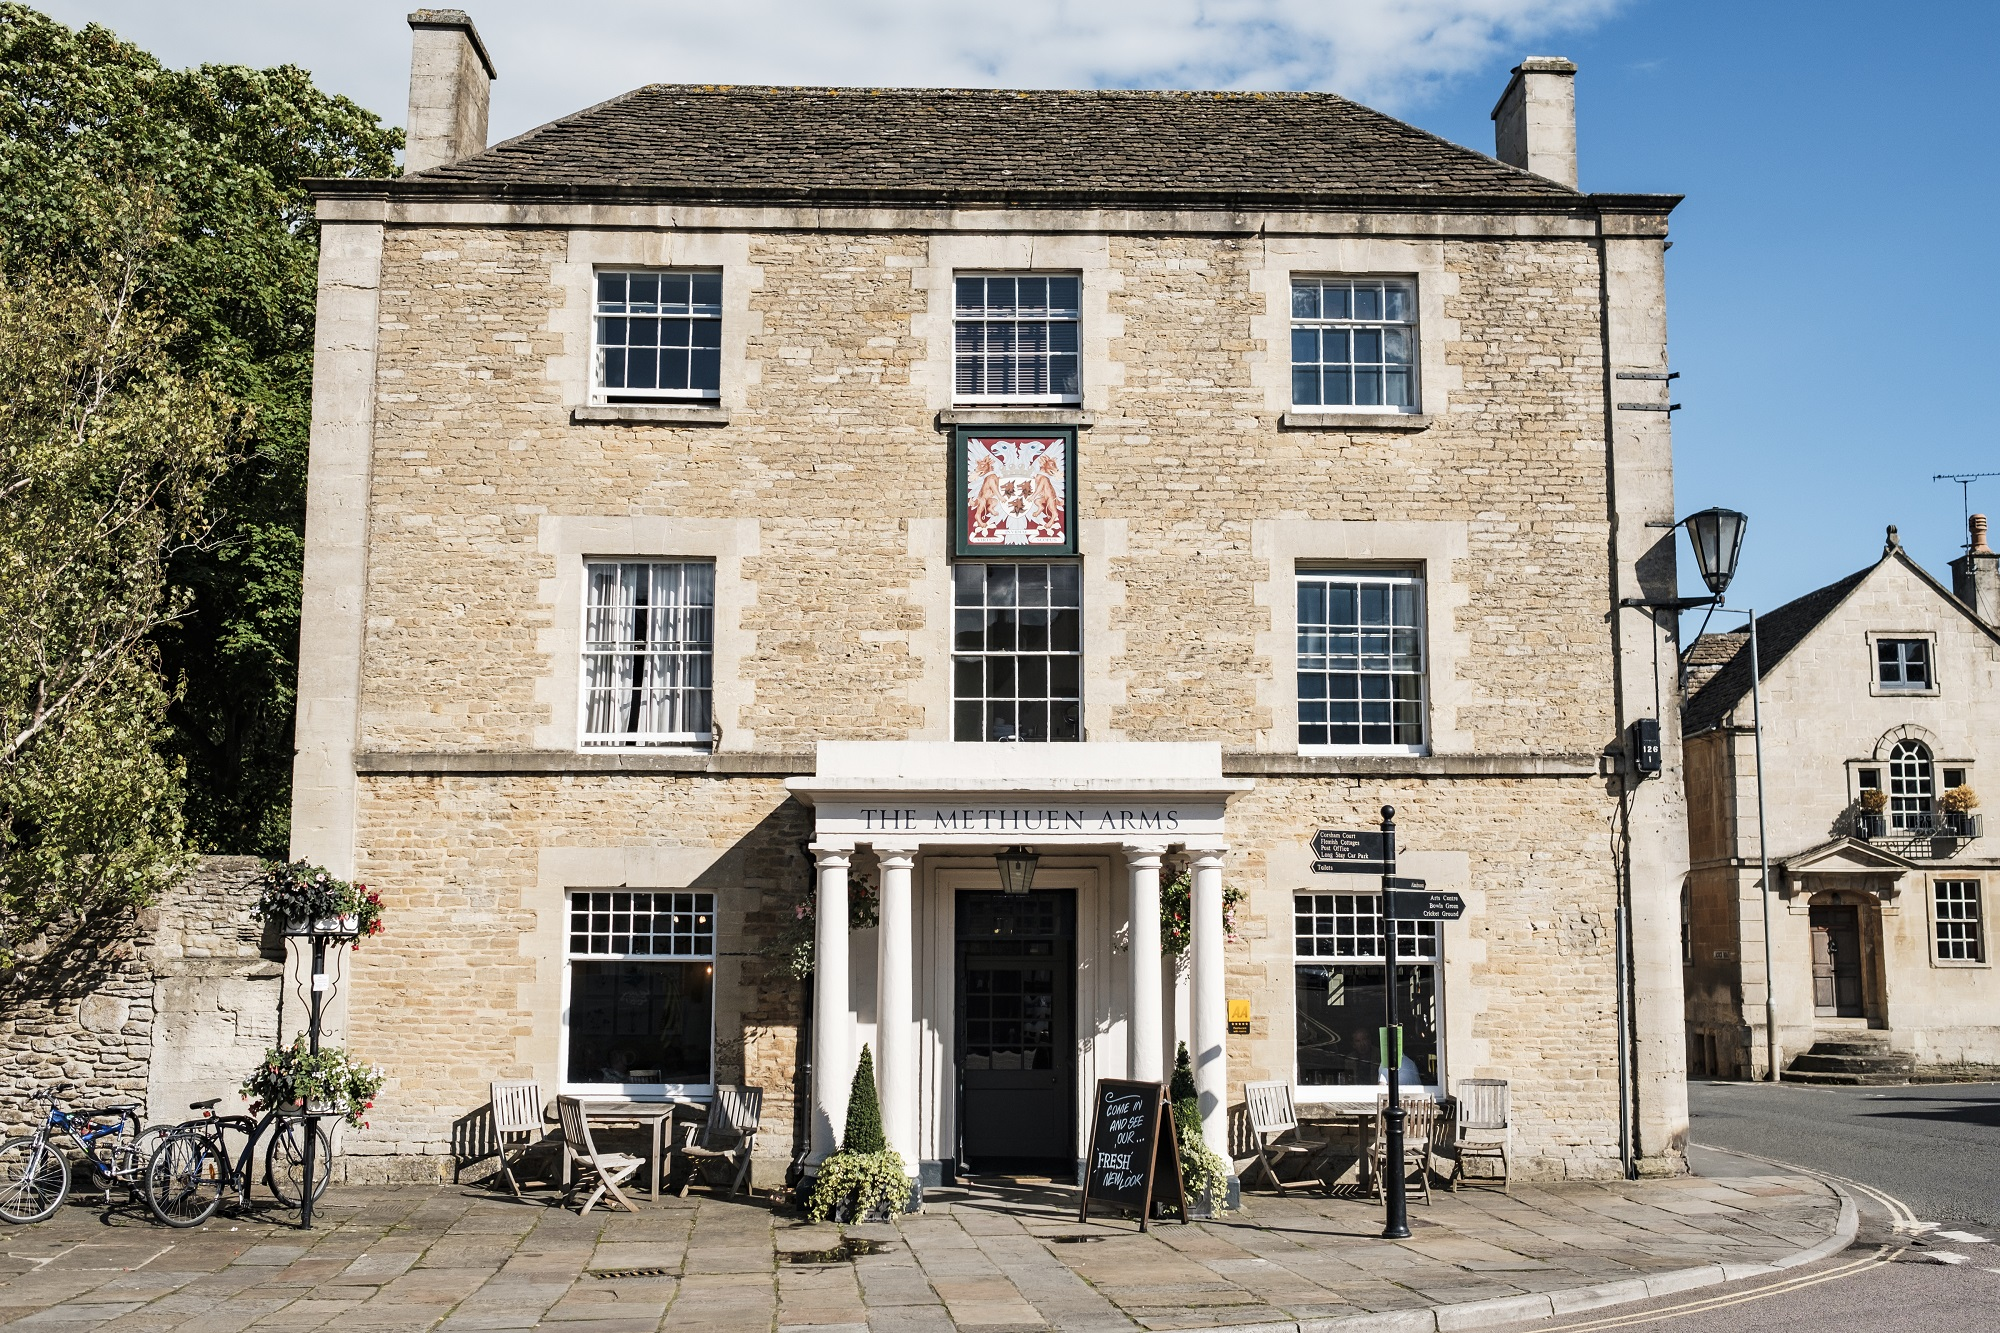 50 New Hotel Openings For 2018 | Europe | Methuen Arms - Corsham, Wiltshire, UK